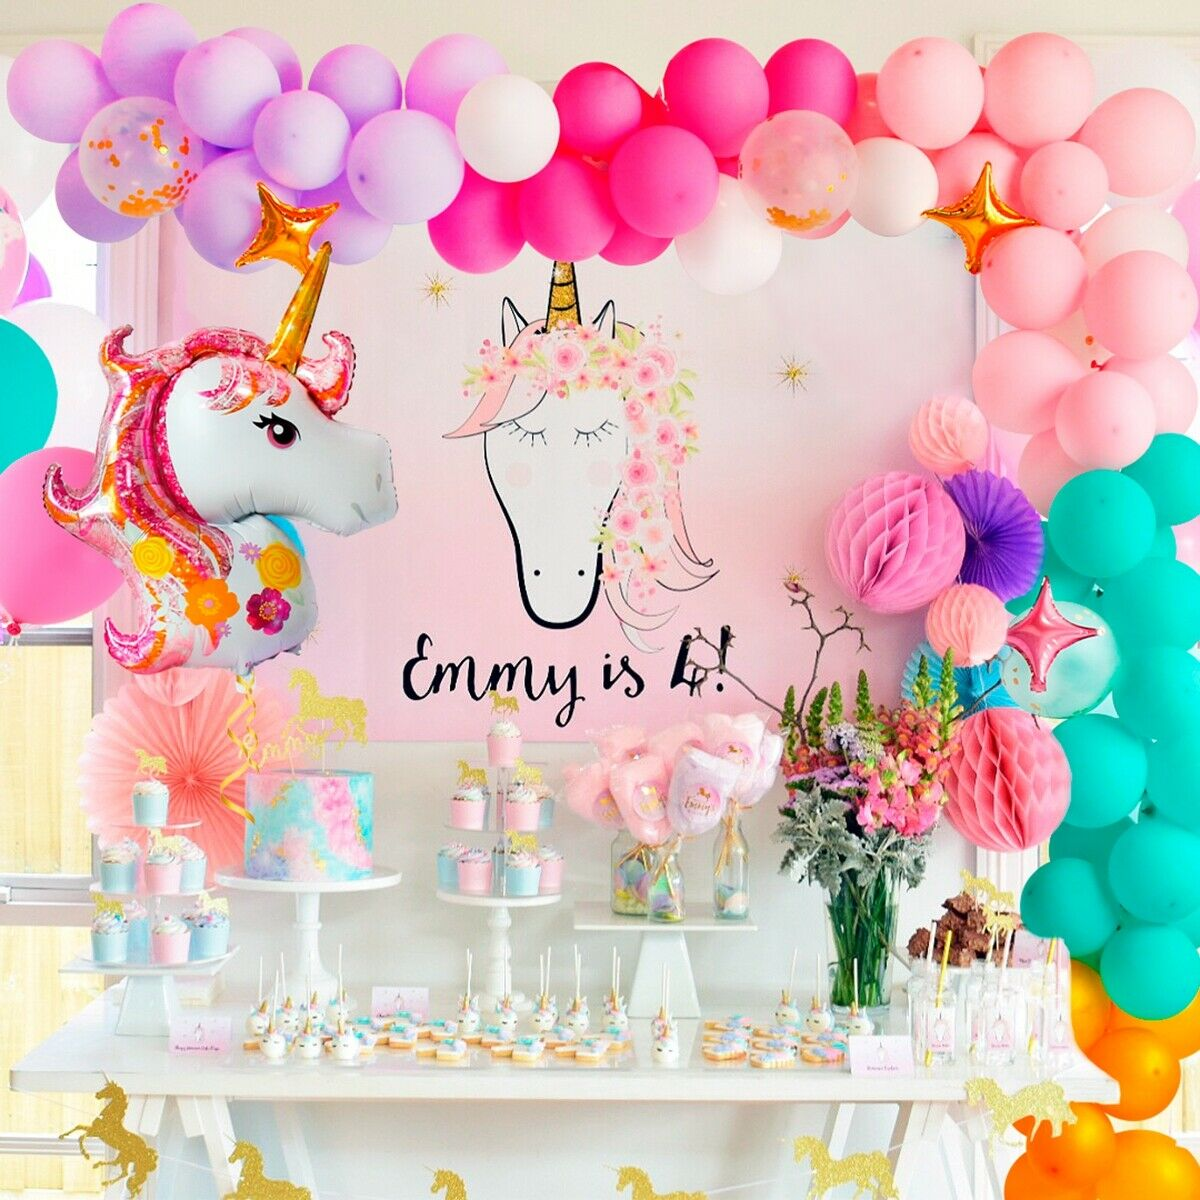 102pcs 12 Pastel Unicorn Balloons Garland Arch Set Kids Birthday Party Decor Ebay